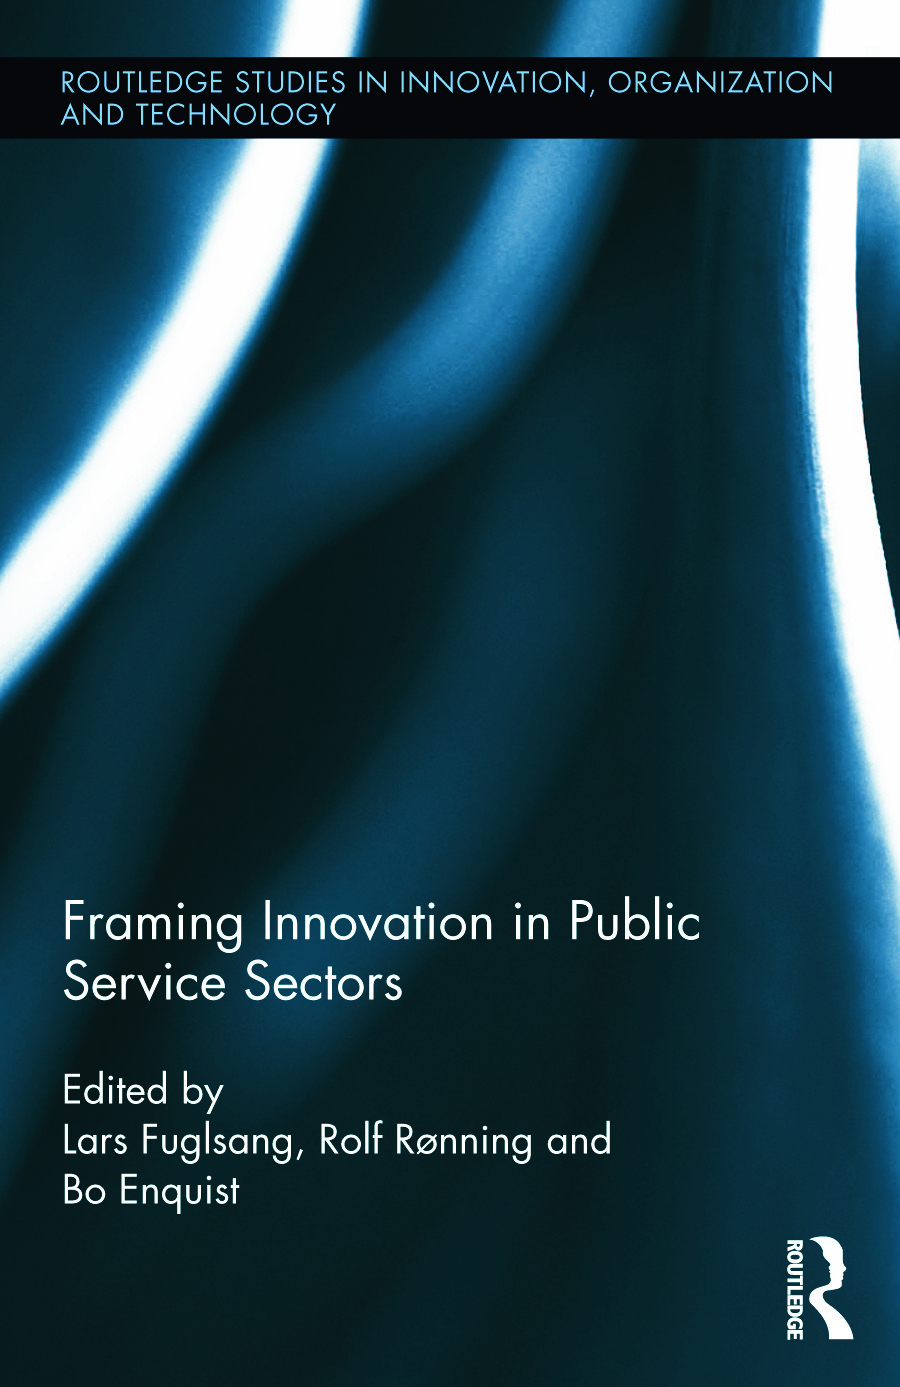 Coevolution and Innovations in Governance: A Case Study of the New Public Service System for Electric Vehicles in Oslo